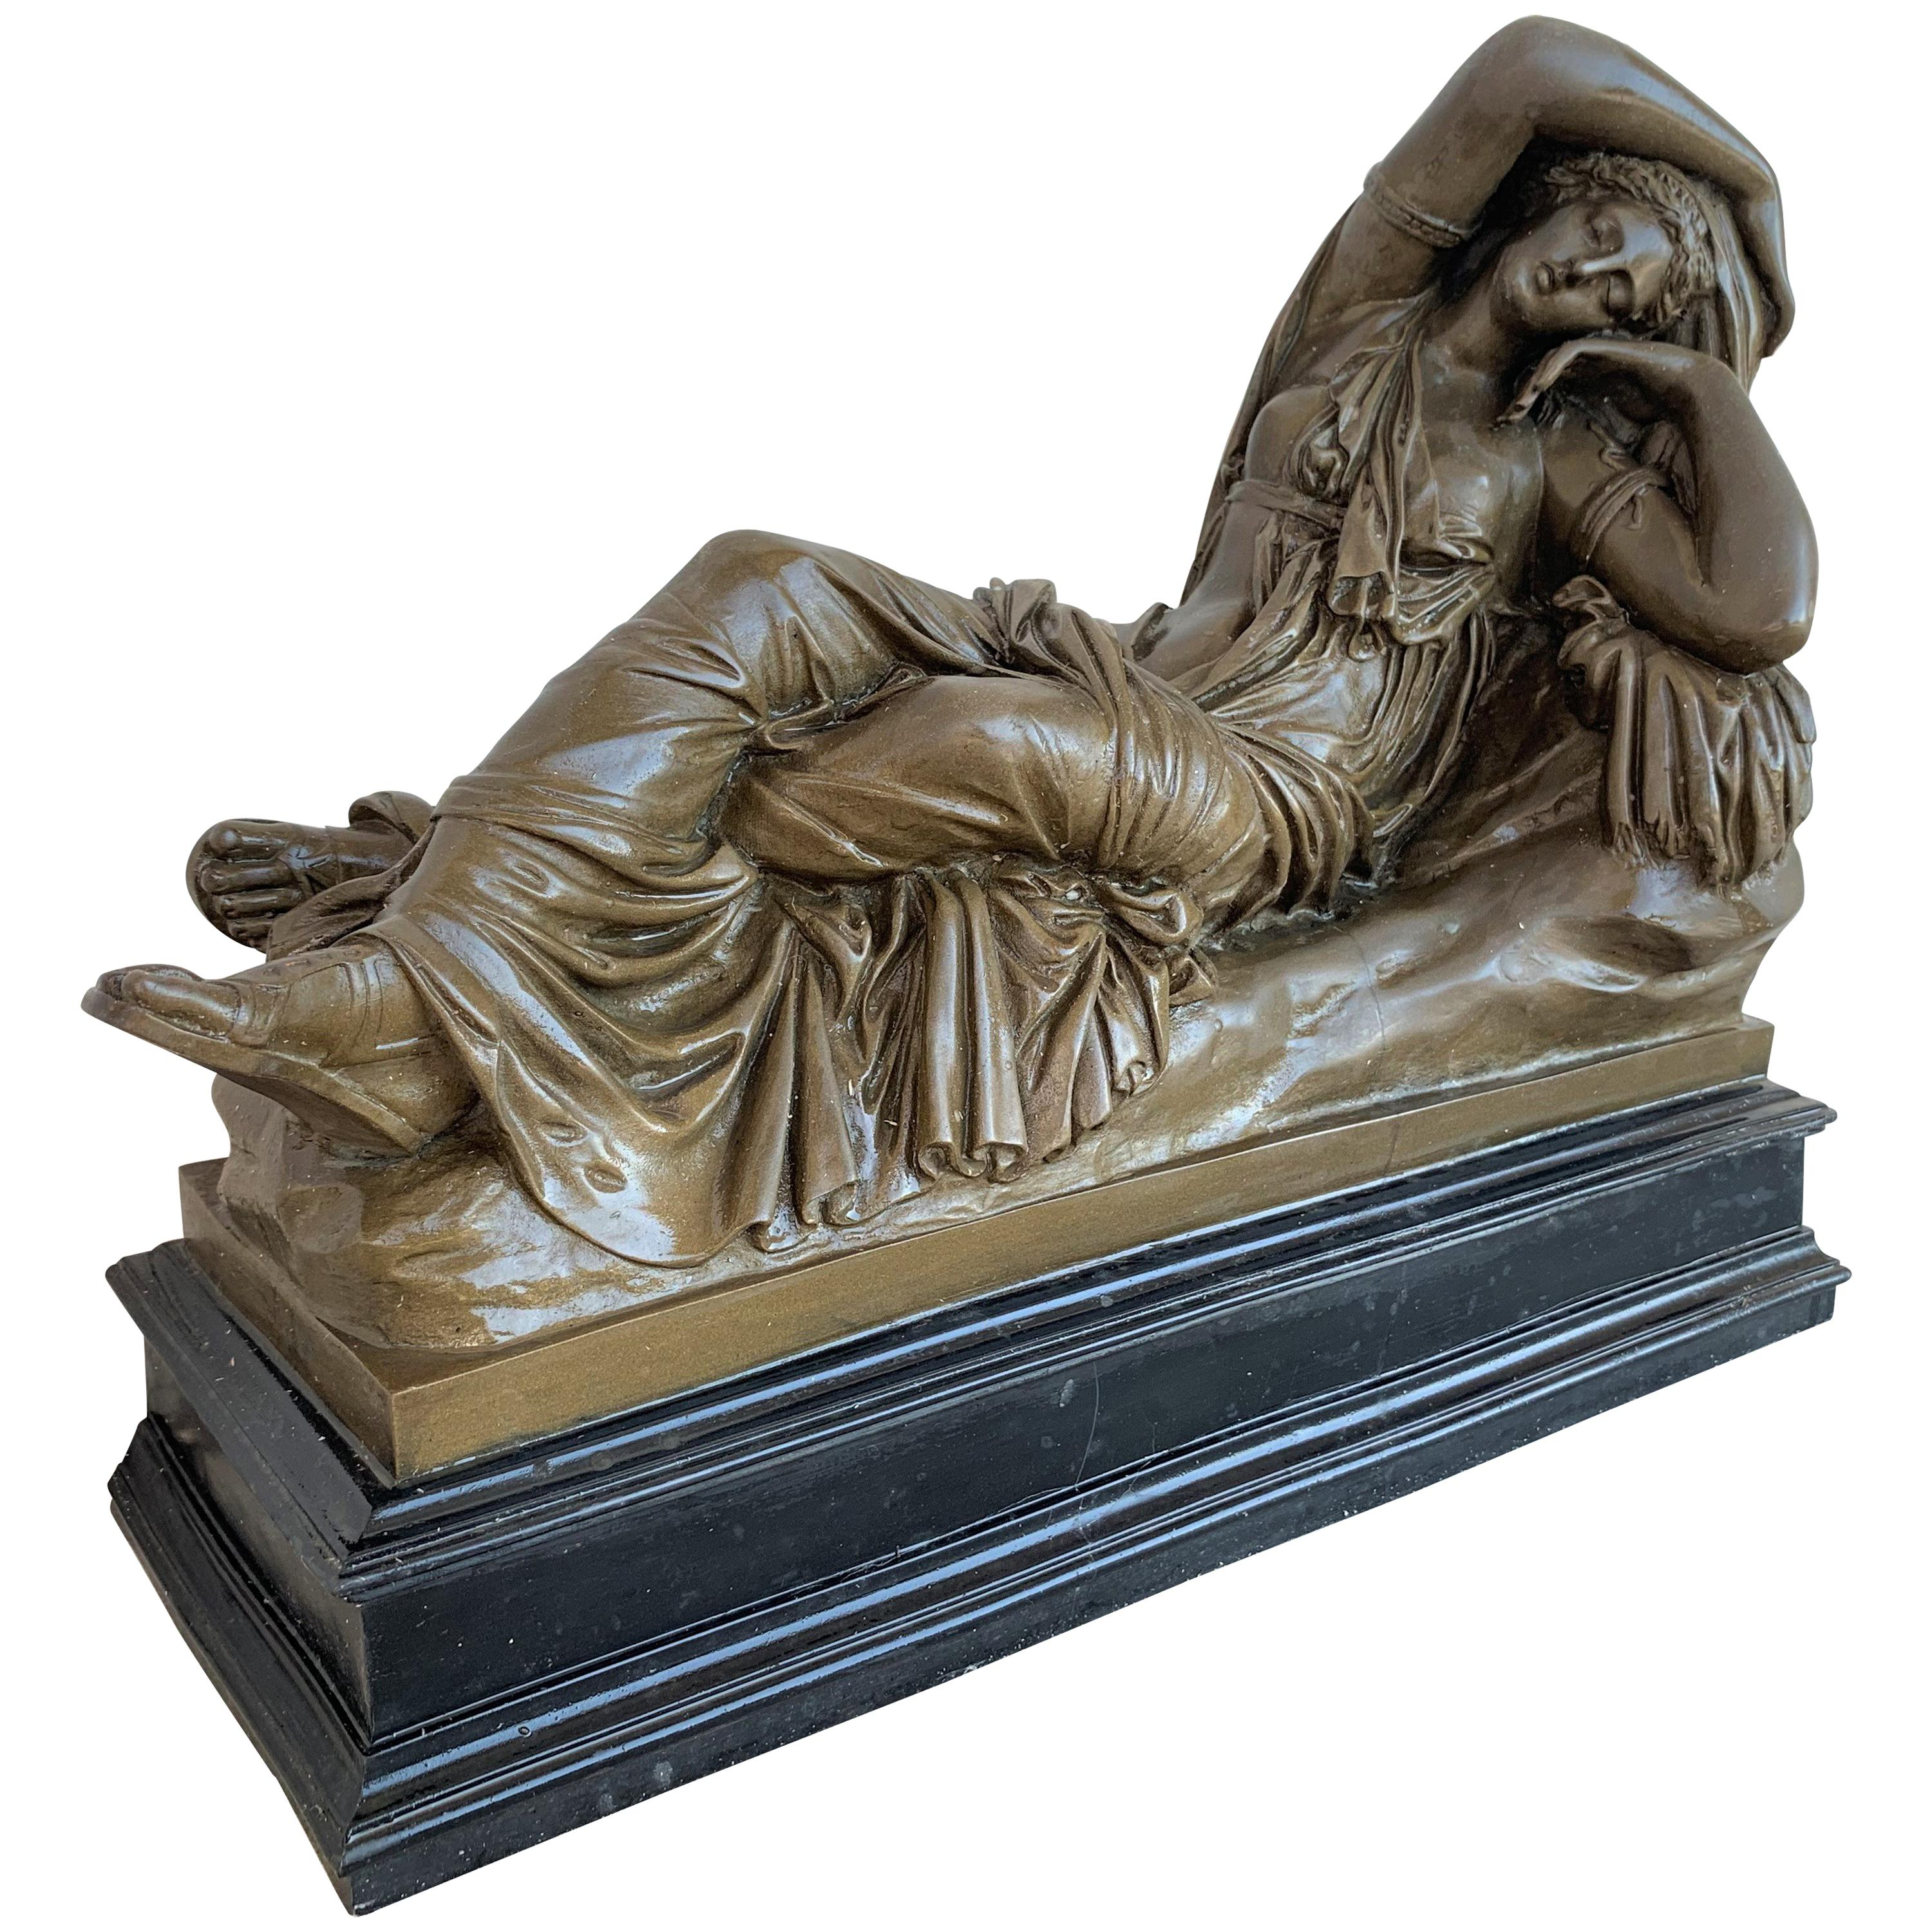 Italian Bronze Tuscany Neoclassical Style Sculpture Featuring a Relaxed Woman